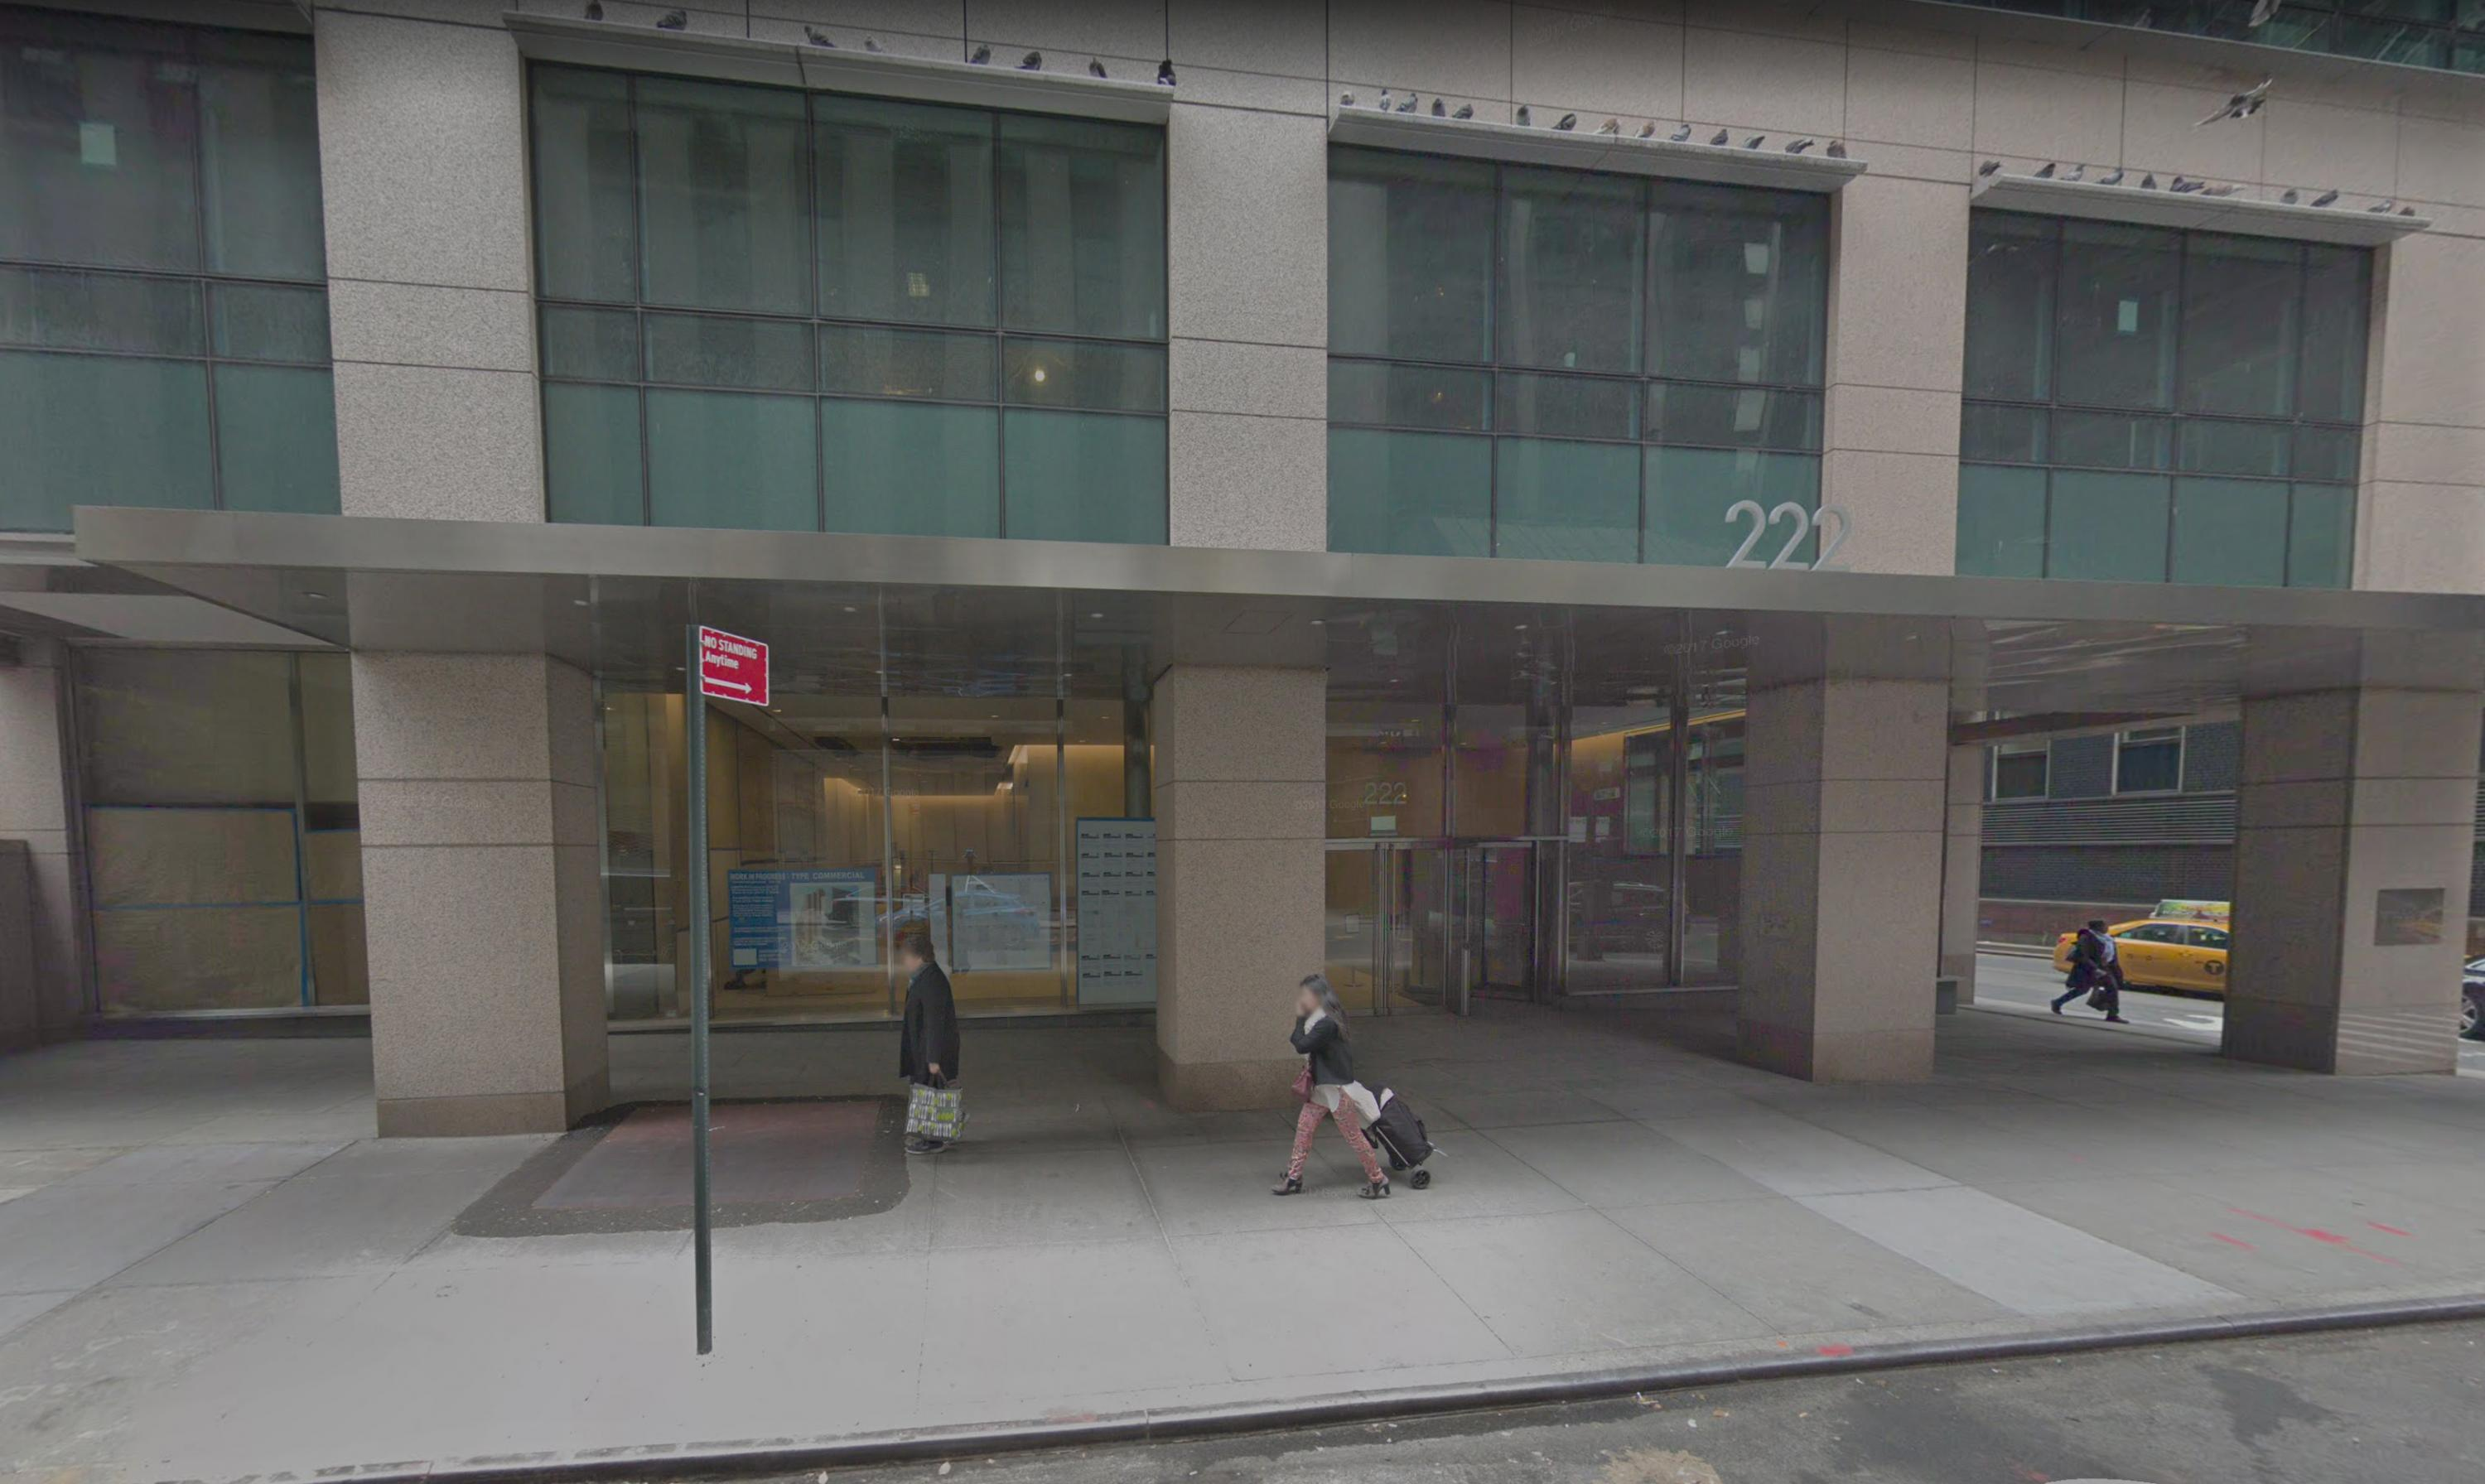 Tisch Hospital Ranking Nyu Langone Health To Open Outpatient Building For Specialty Practices